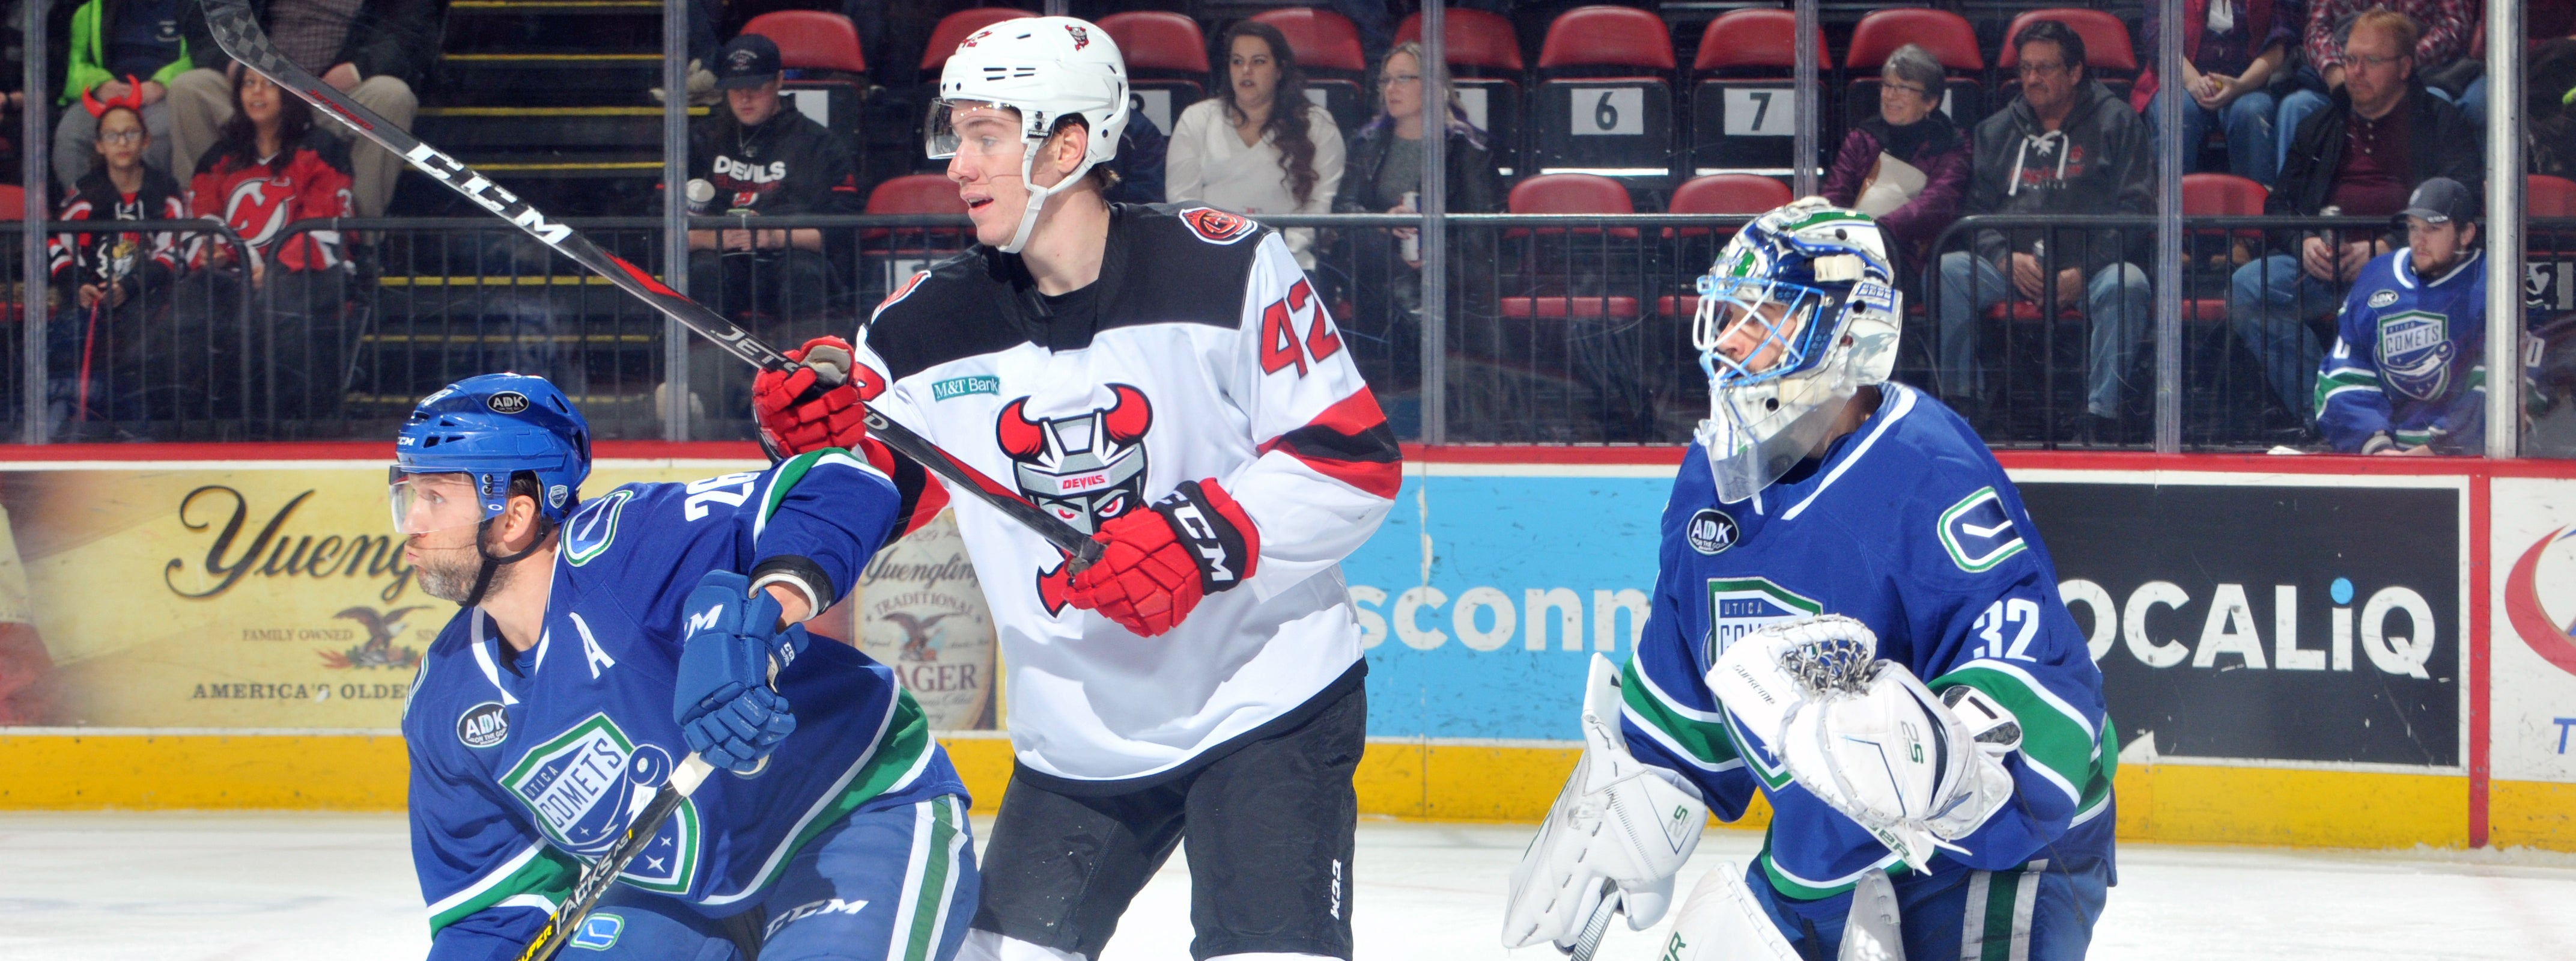 COMETS ERUPT FOR SEVEN GOALS IN WIN OVER DEVILS